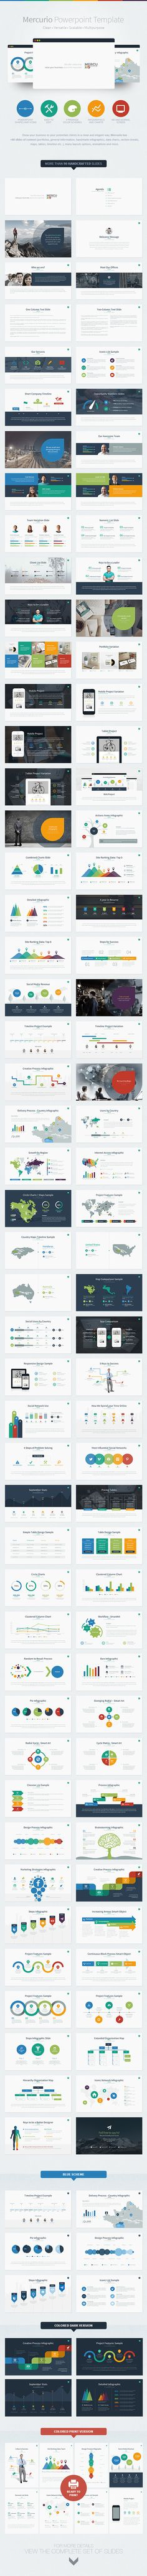 Mercurio PowerPoint Presentation Template on Behance